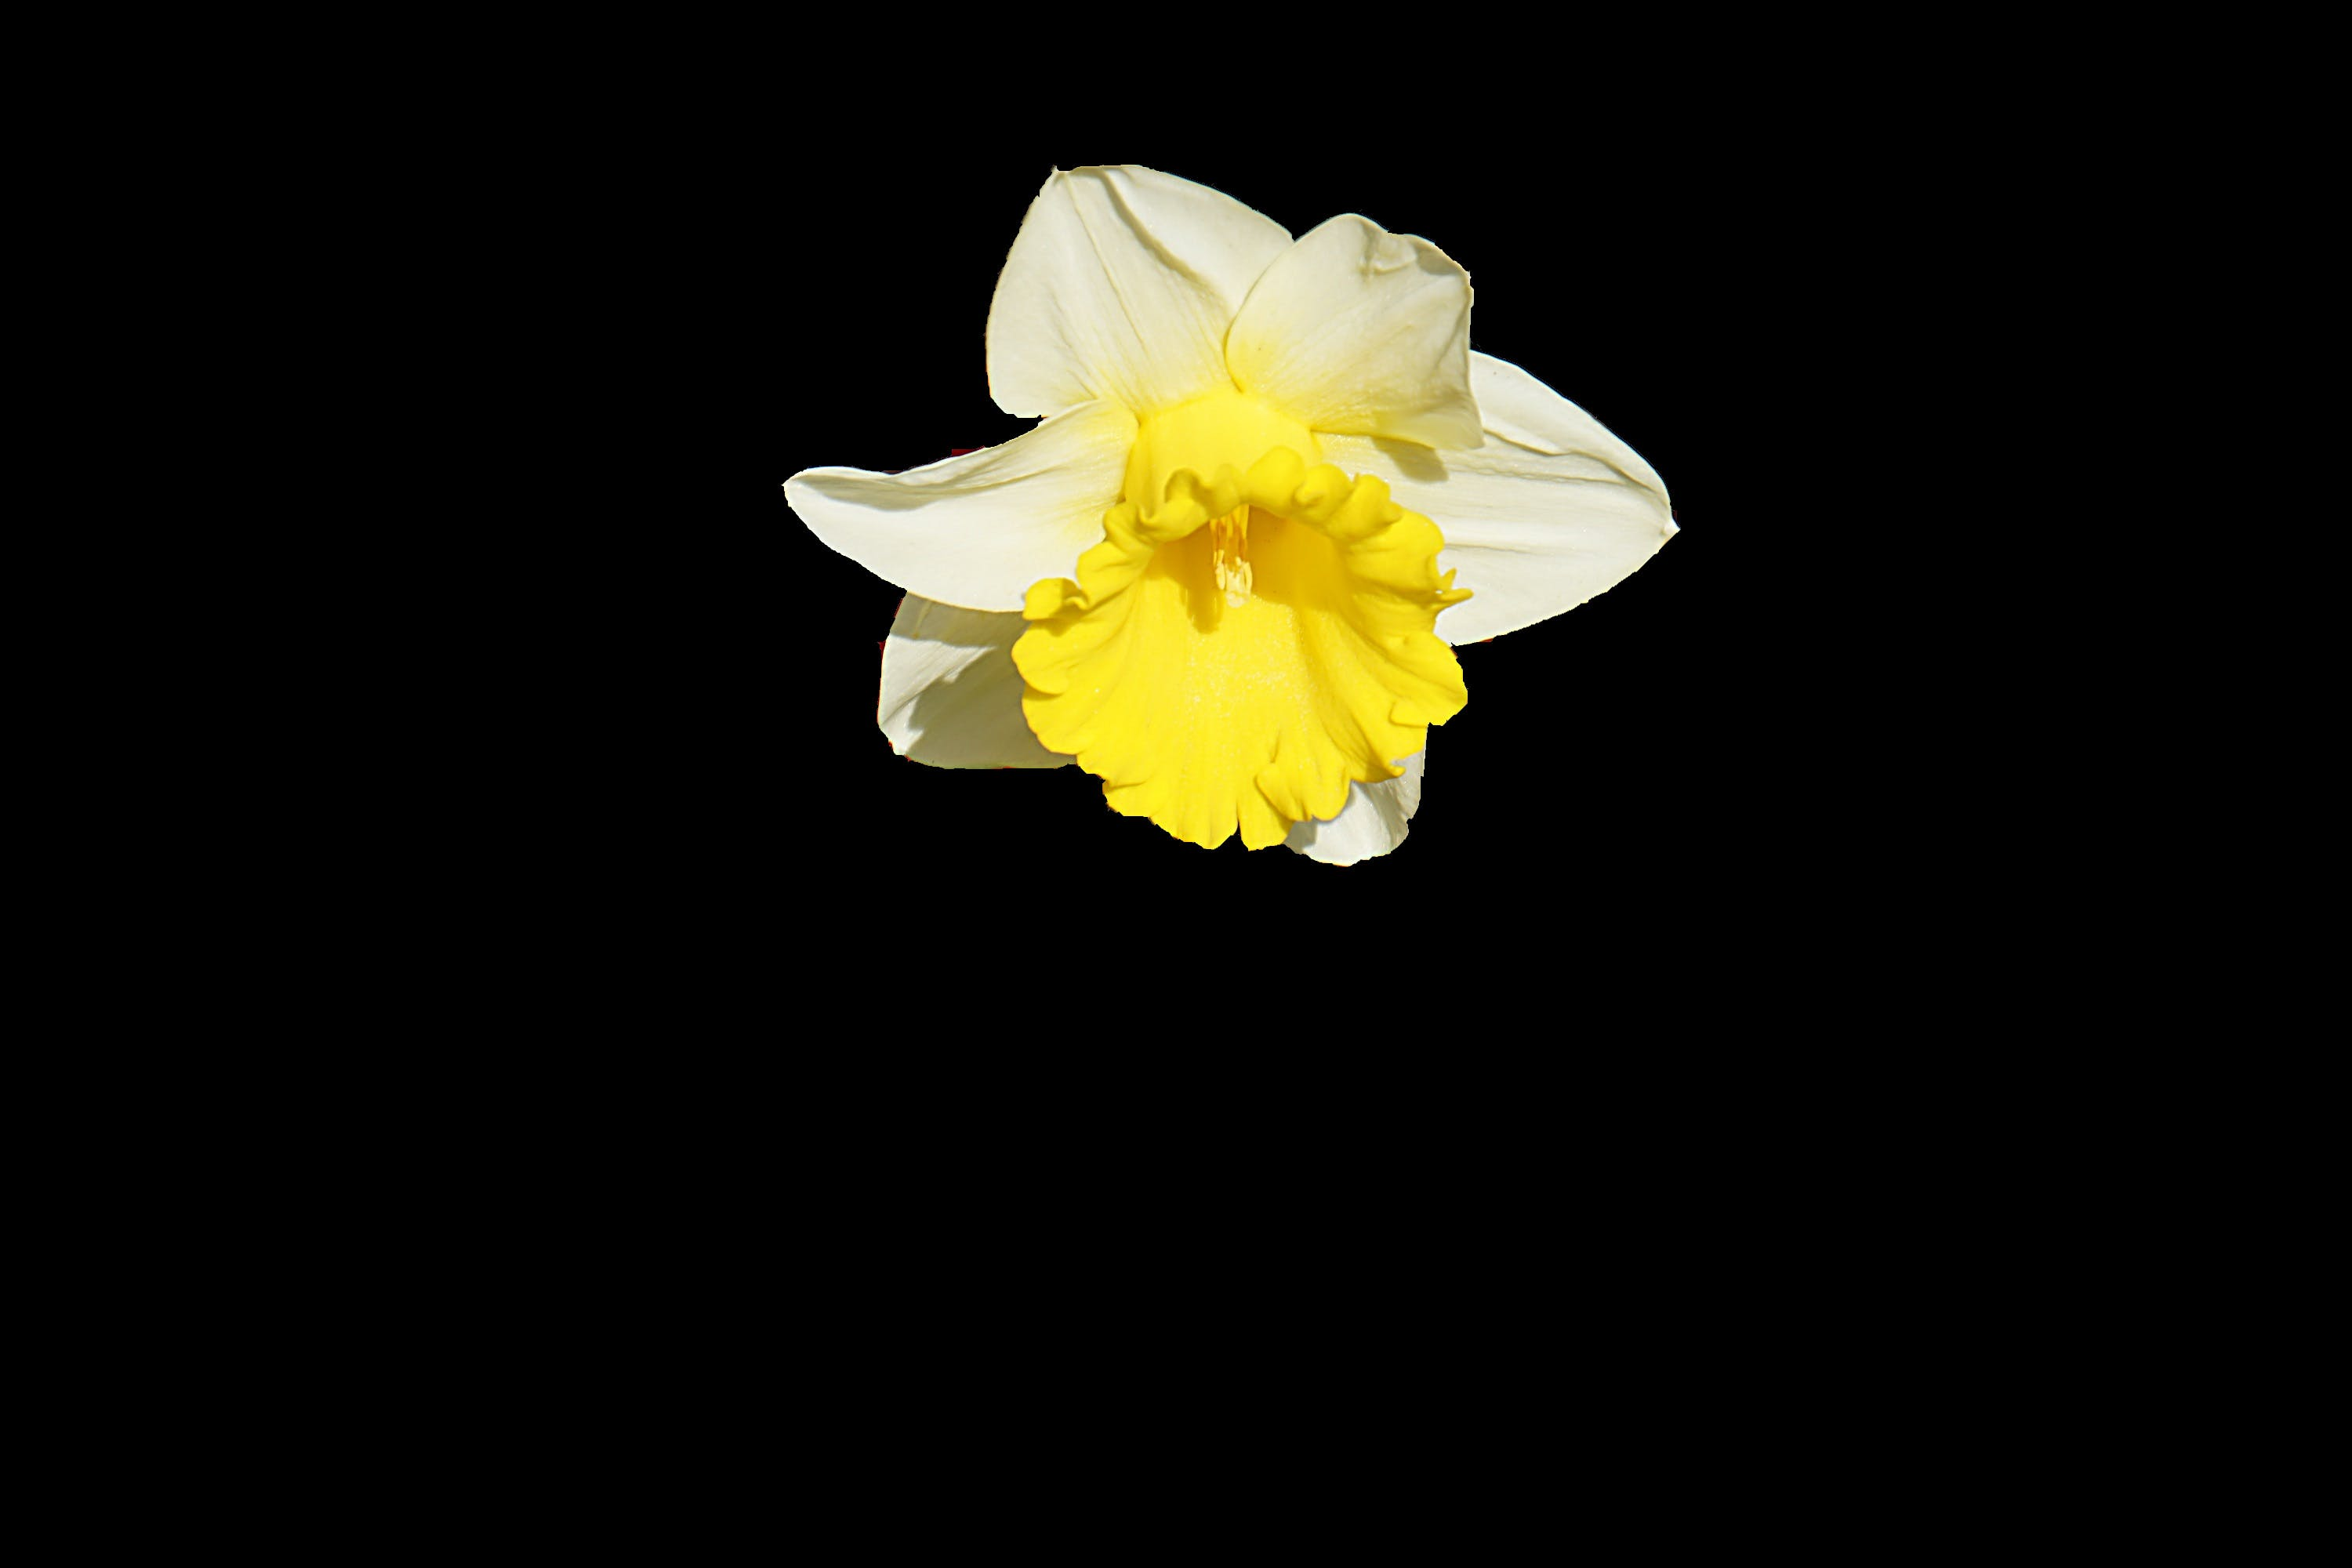 Yellow and White Petaled Flower